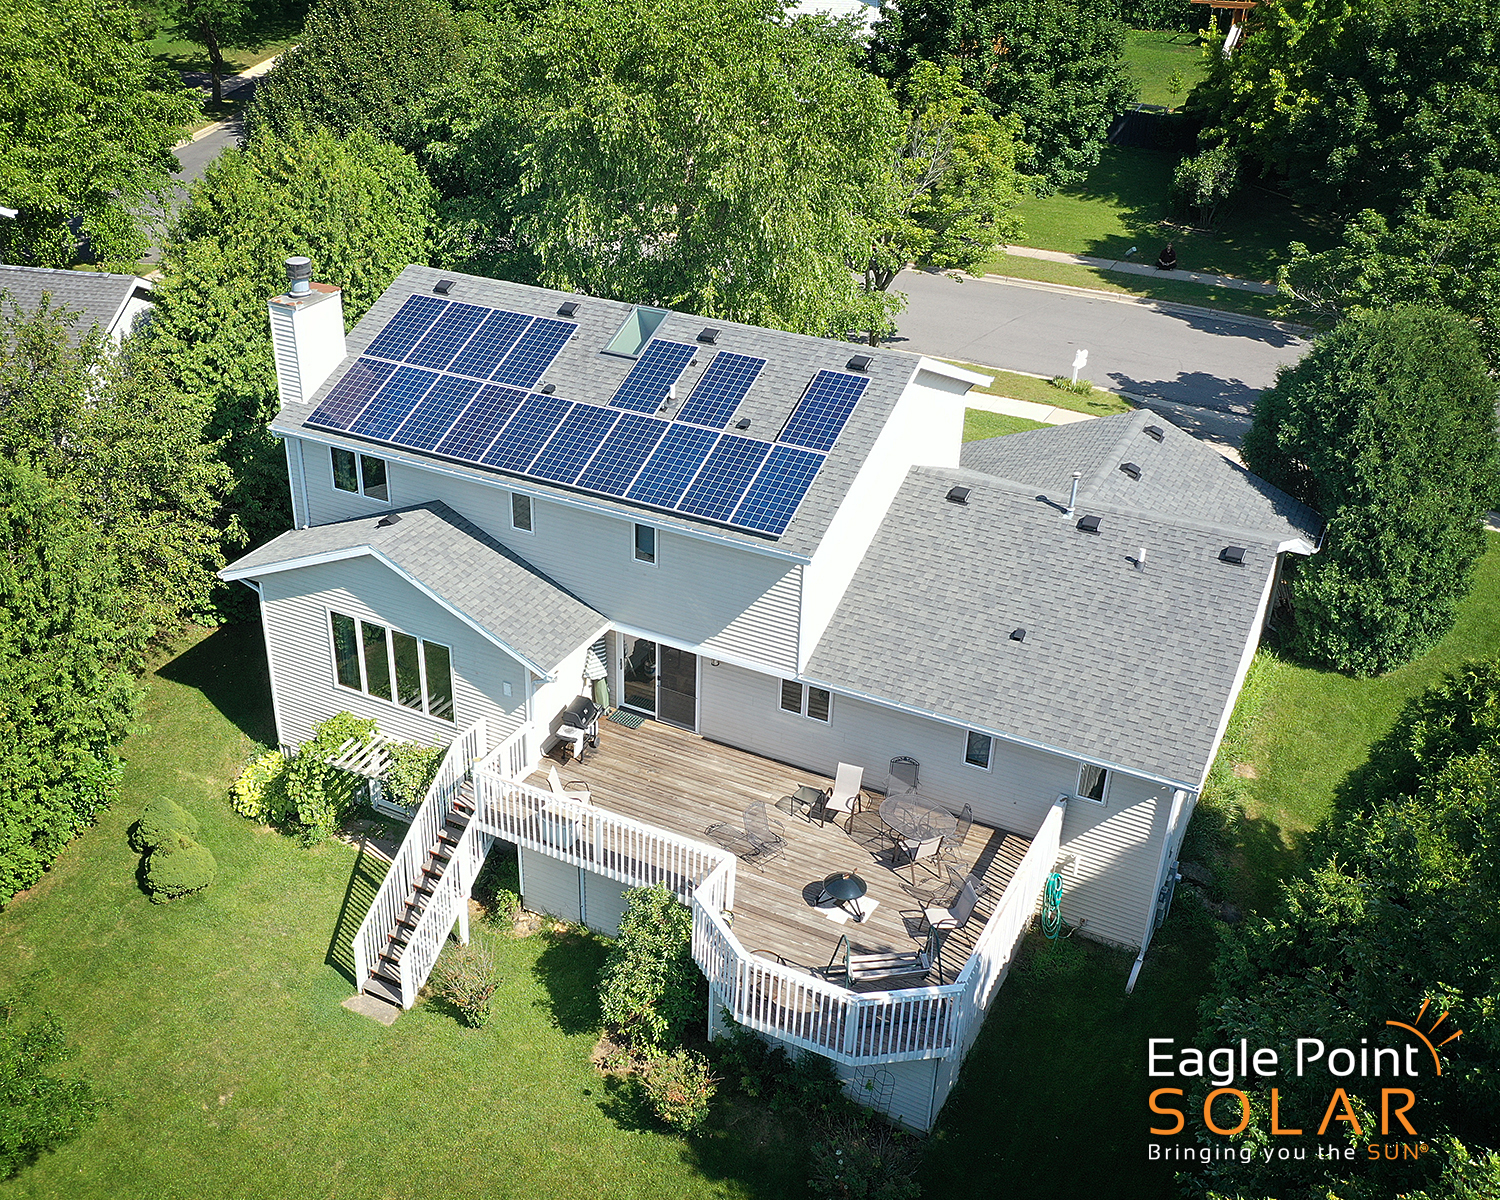 Arial photo of Kosbau residence roof mounted solar array.